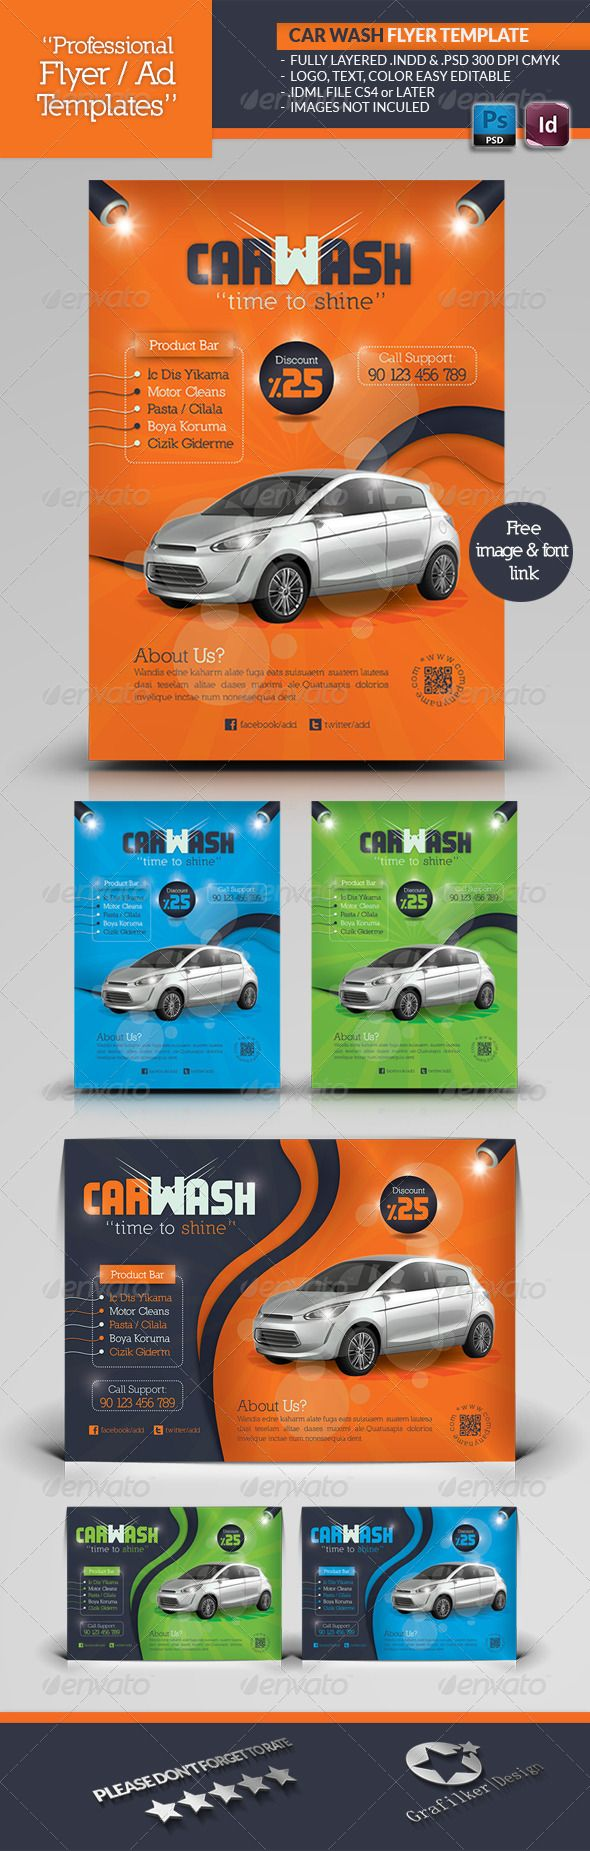 Car Wash Flyer Template Cars Fonts And Colors